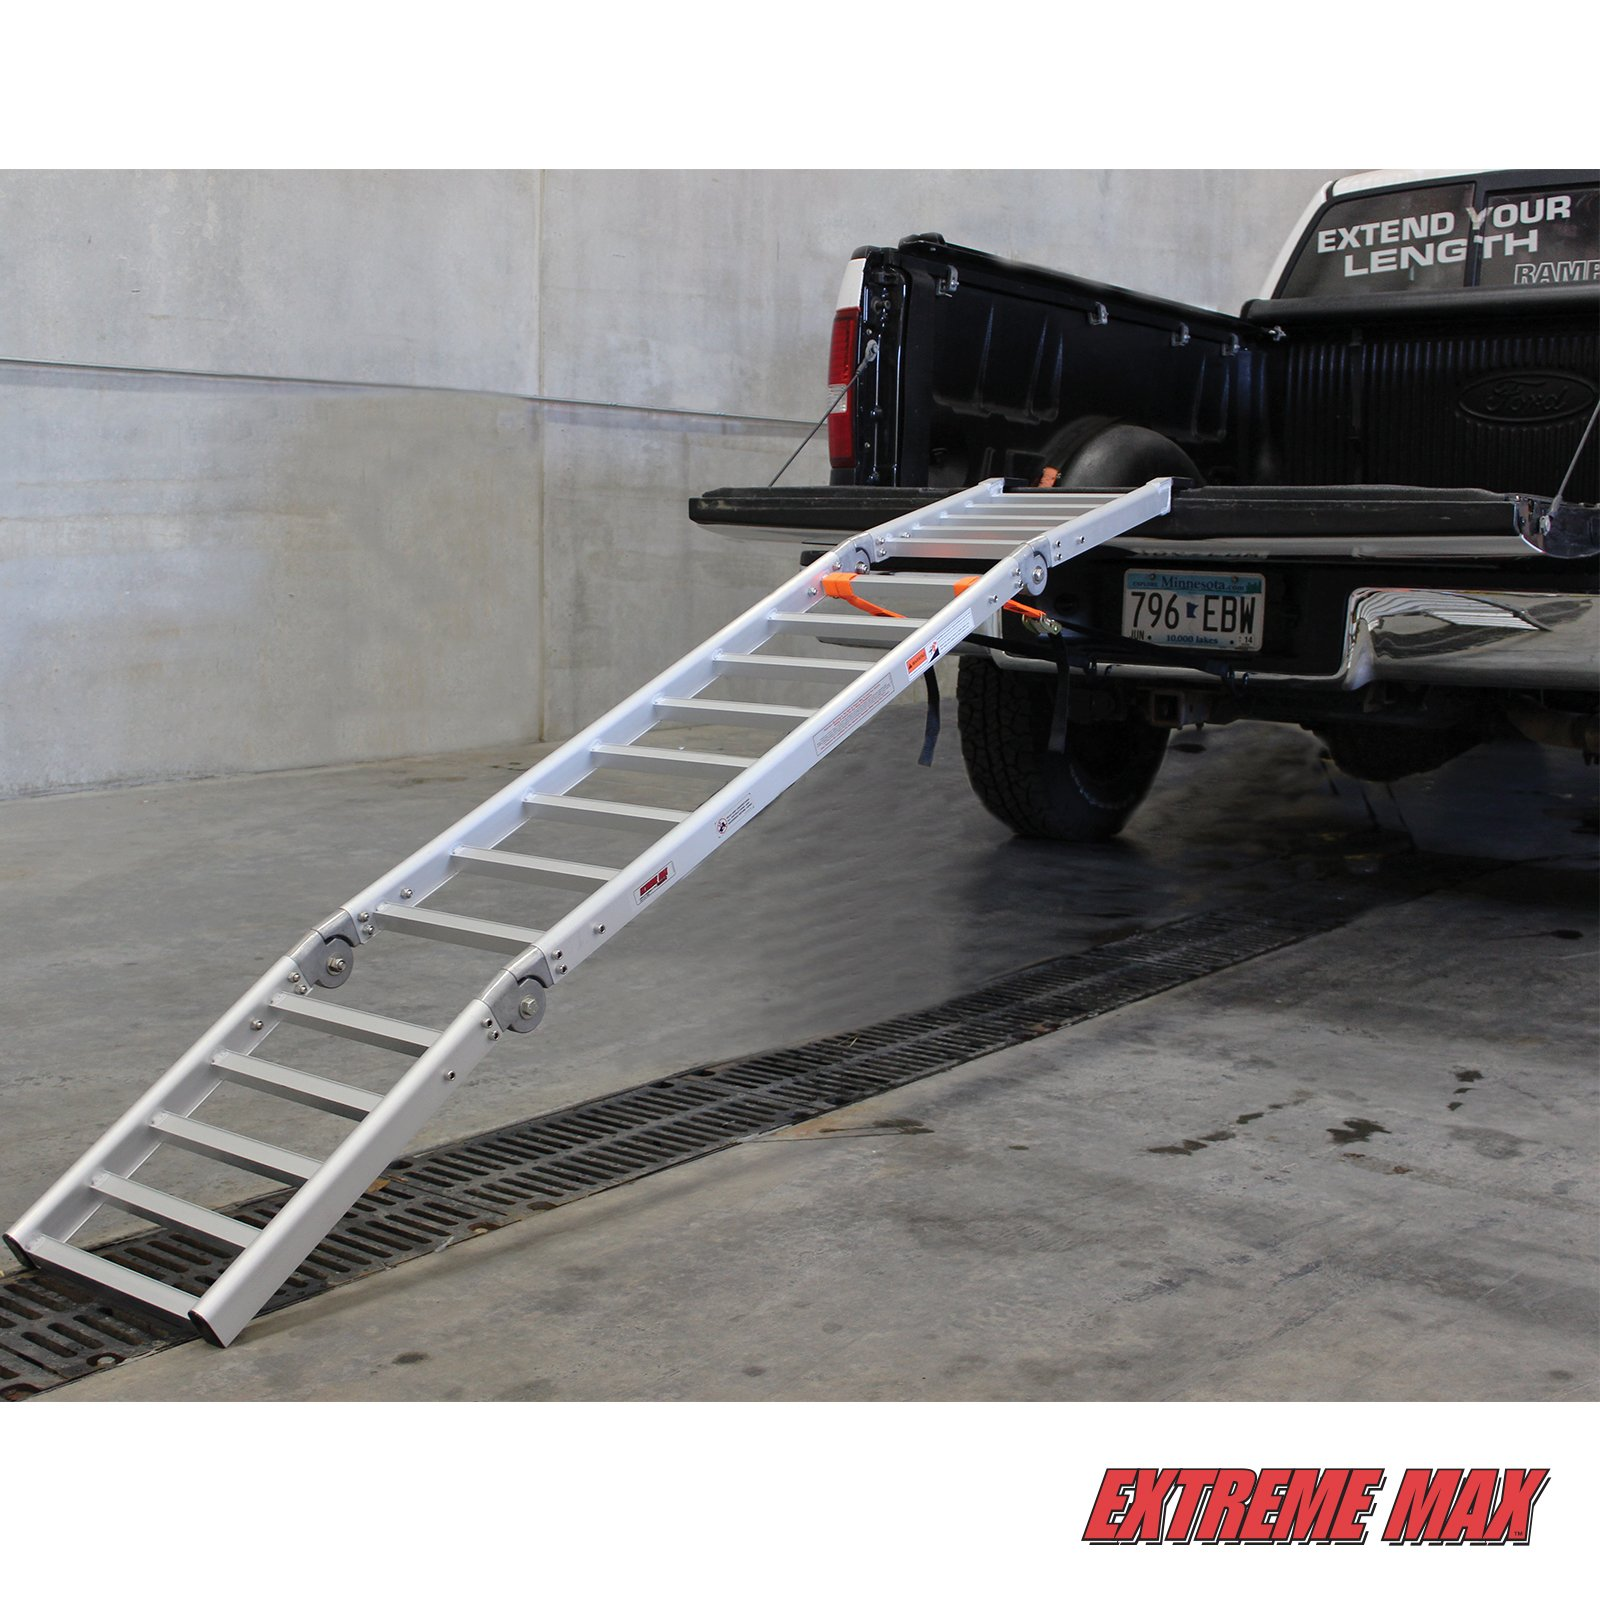 Extreme Max (NR002S-SLVR) Motorcycle RampXtender Aluminum Ramp Set and Tailgate Extender Combo by Extreme Max (Image #1)